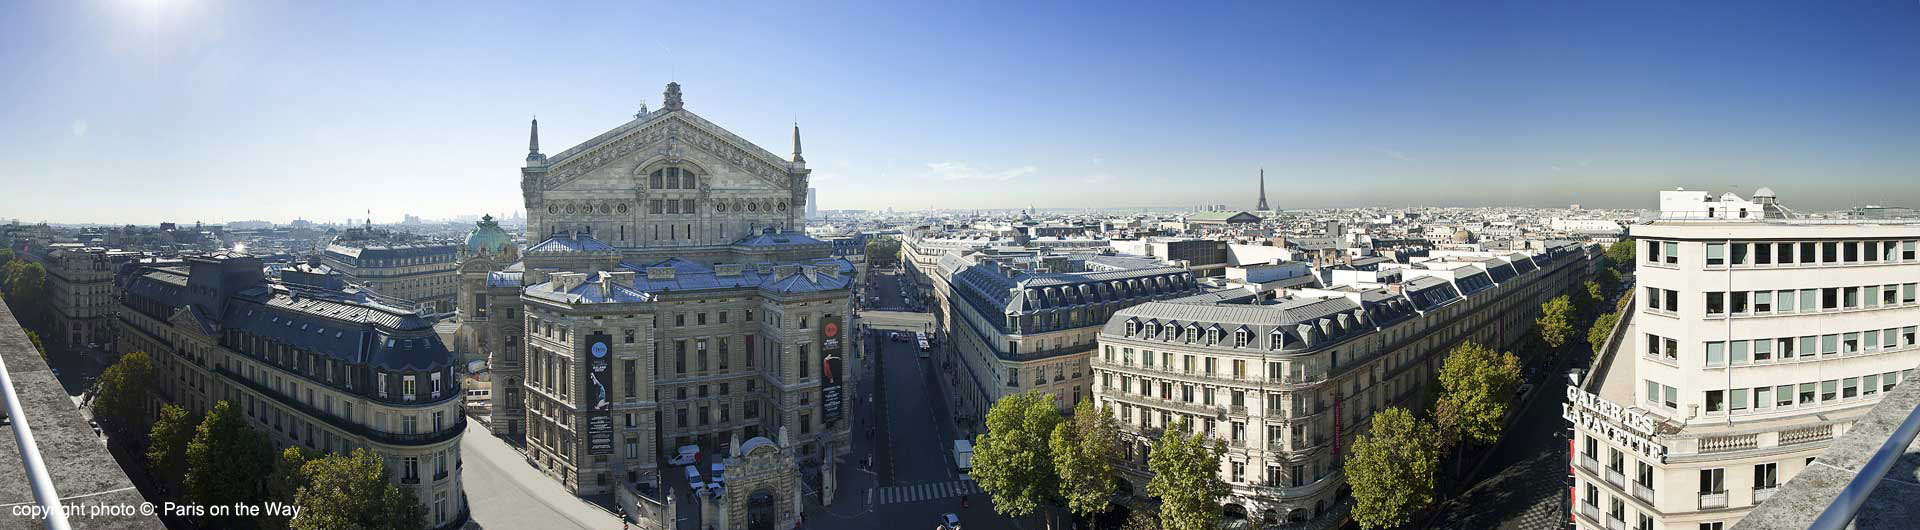 PANORAMIC VIEW OVER PARIS ROOFTOPS